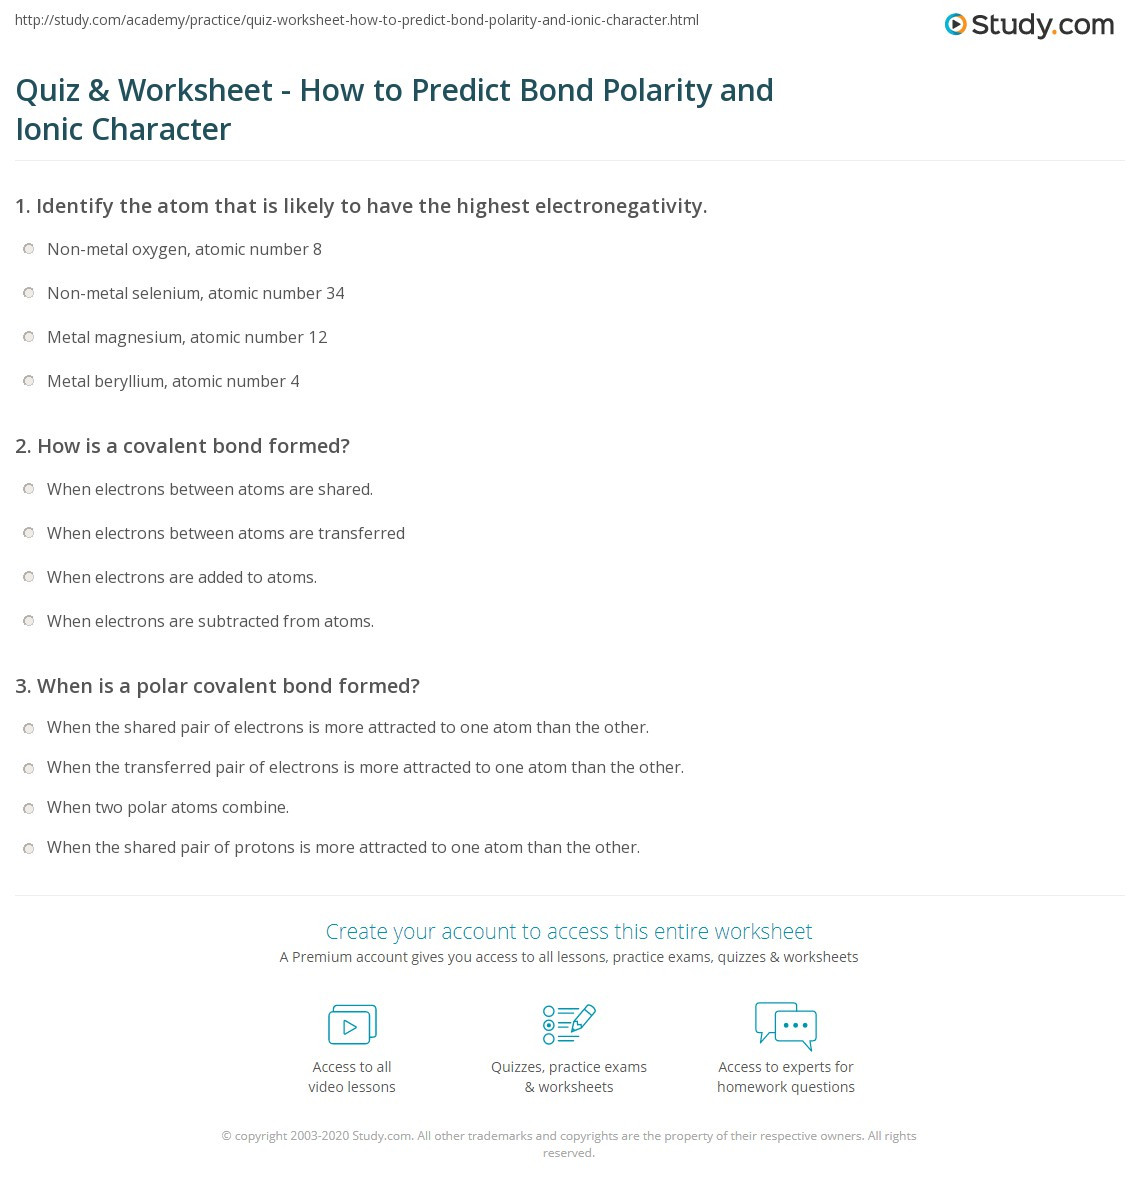 Ionic and Covalent Bonds Worksheet Quiz & Worksheet How to Predict Bond Polarity and Ionic